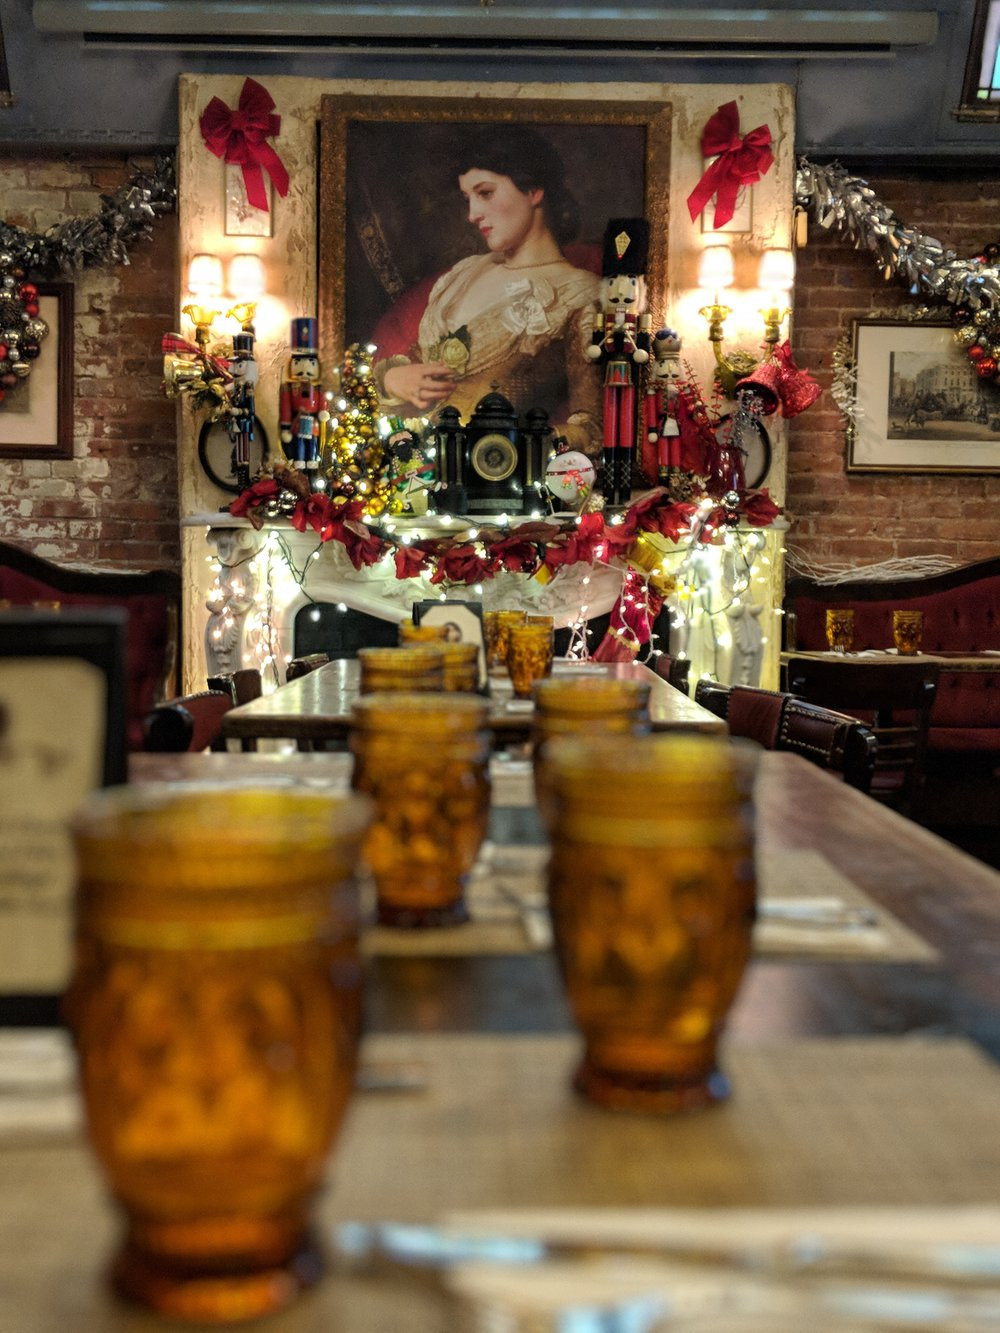 Also makes a great spot to end your day with a great dinner and beautiful holiday ambiance.